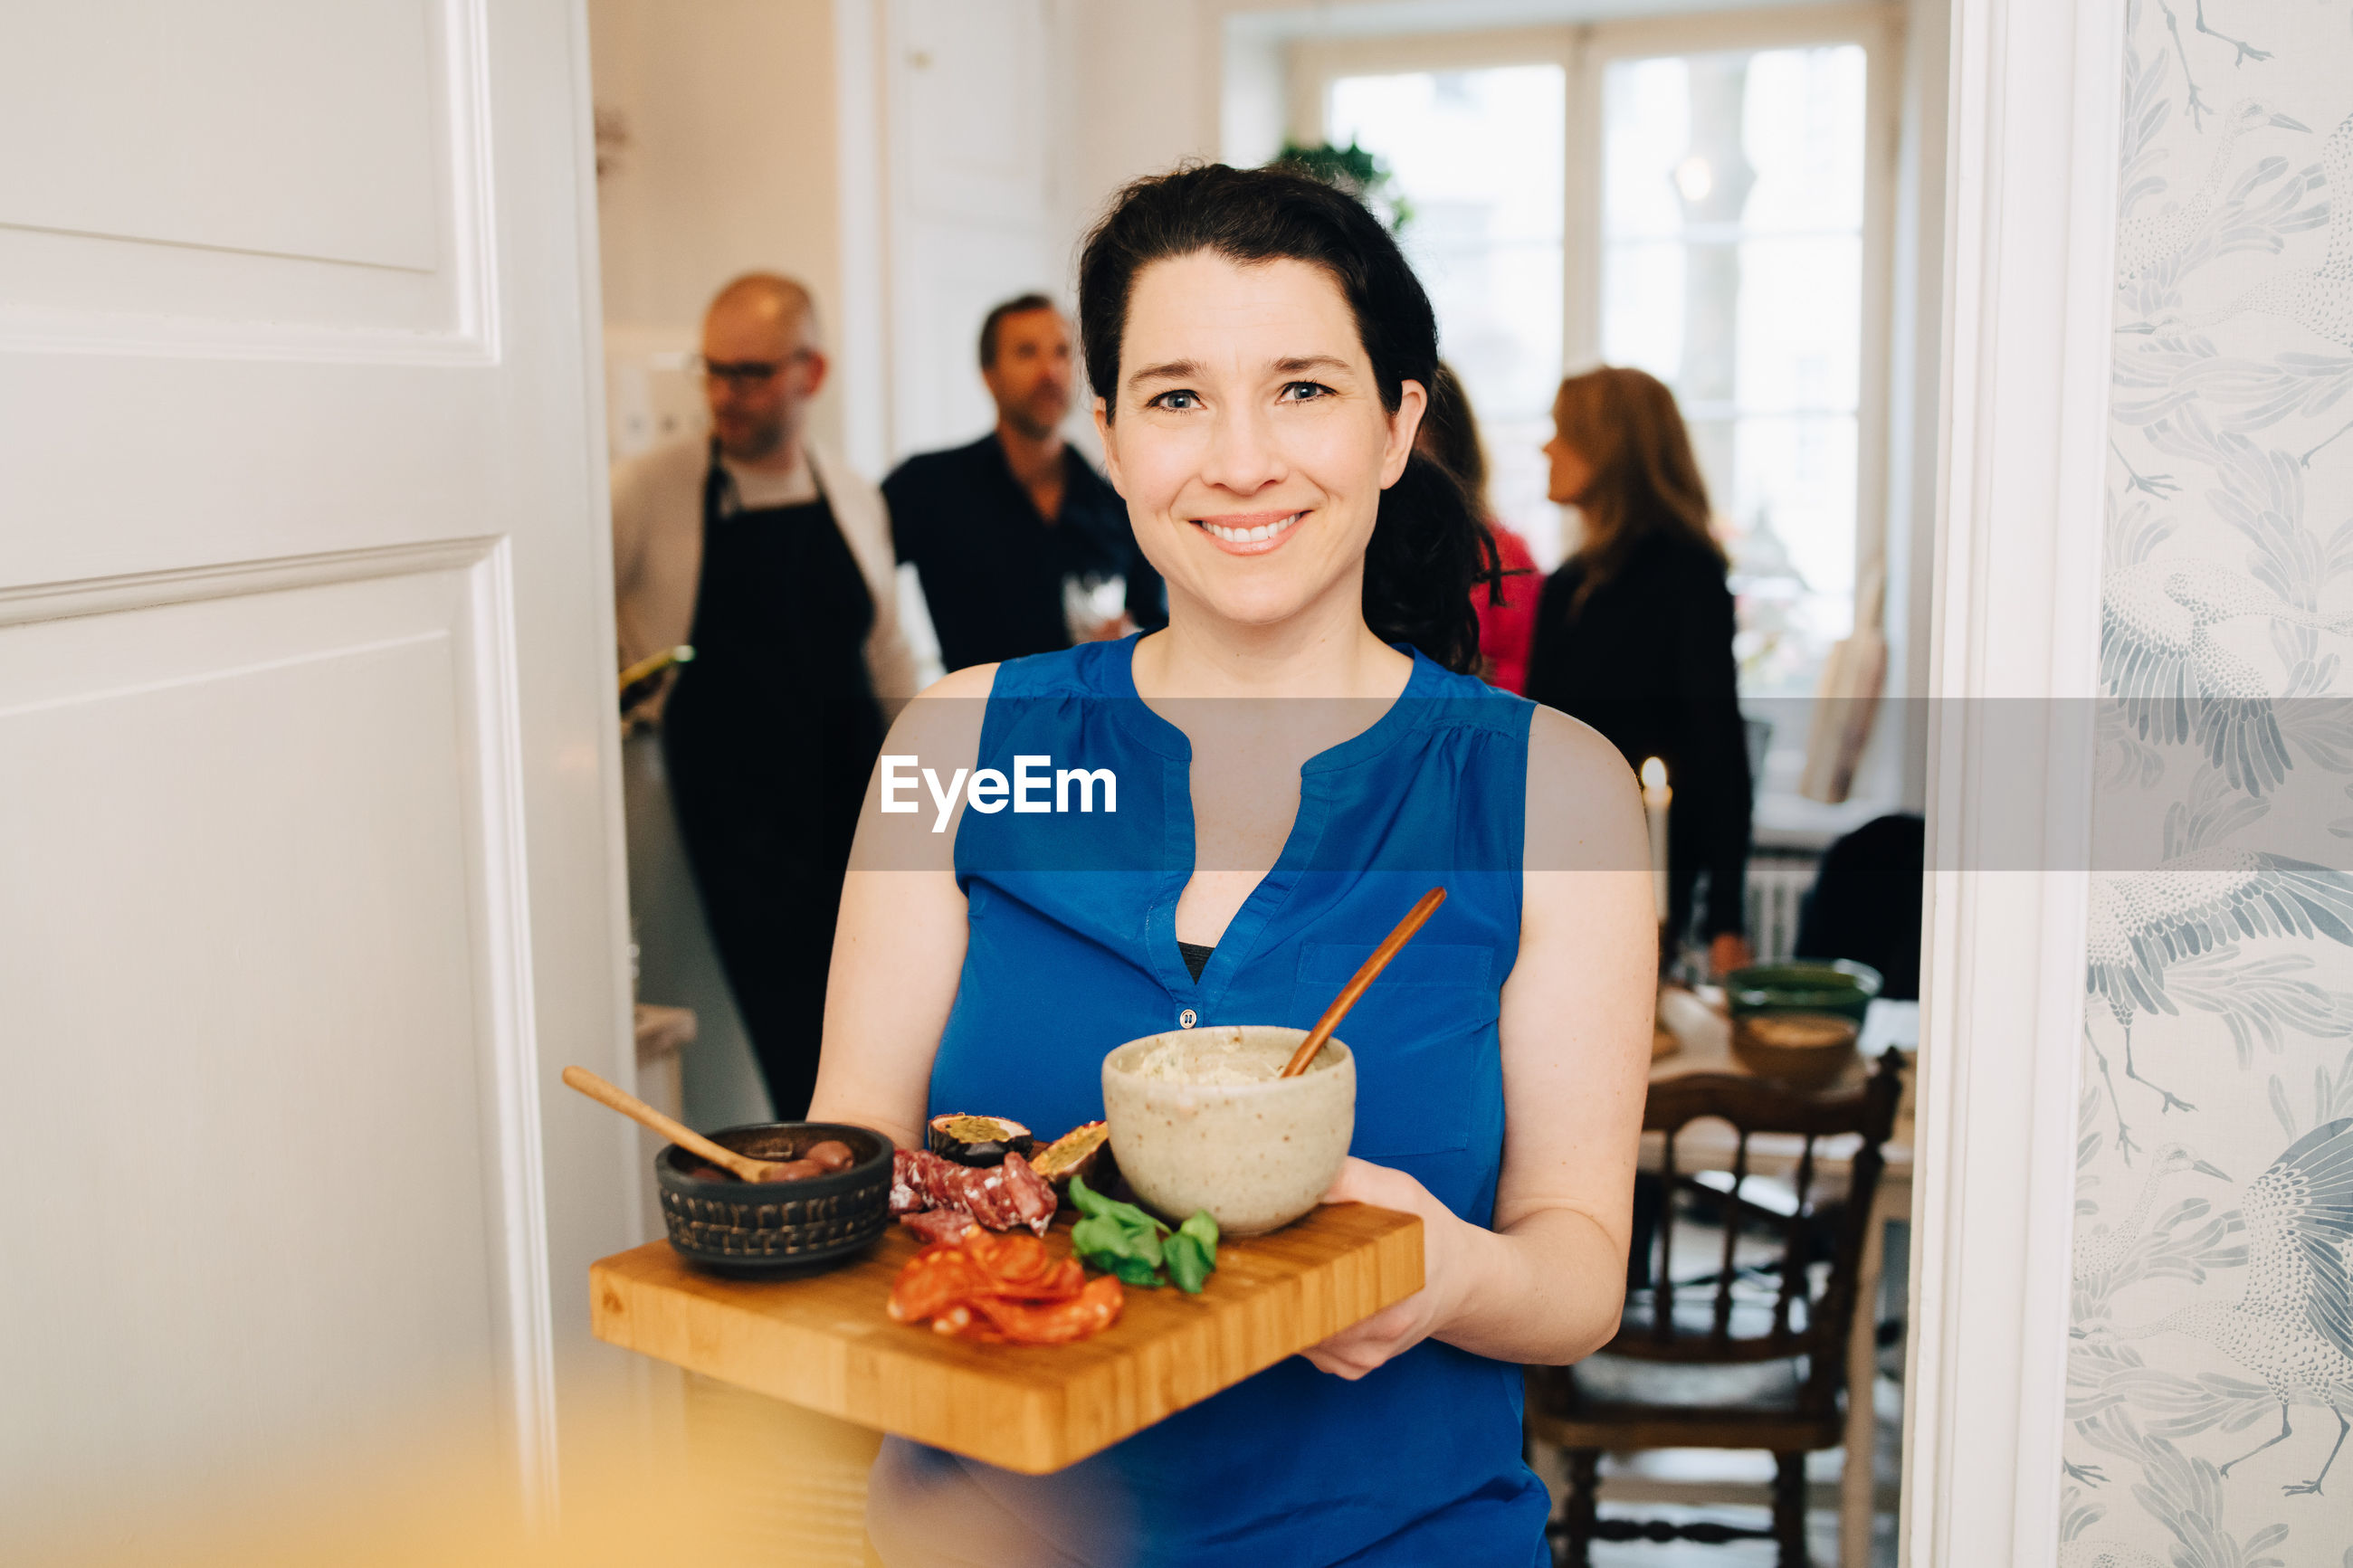 PORTRAIT OF SMILING YOUNG WOMAN STANDING BY FOOD AT HOME